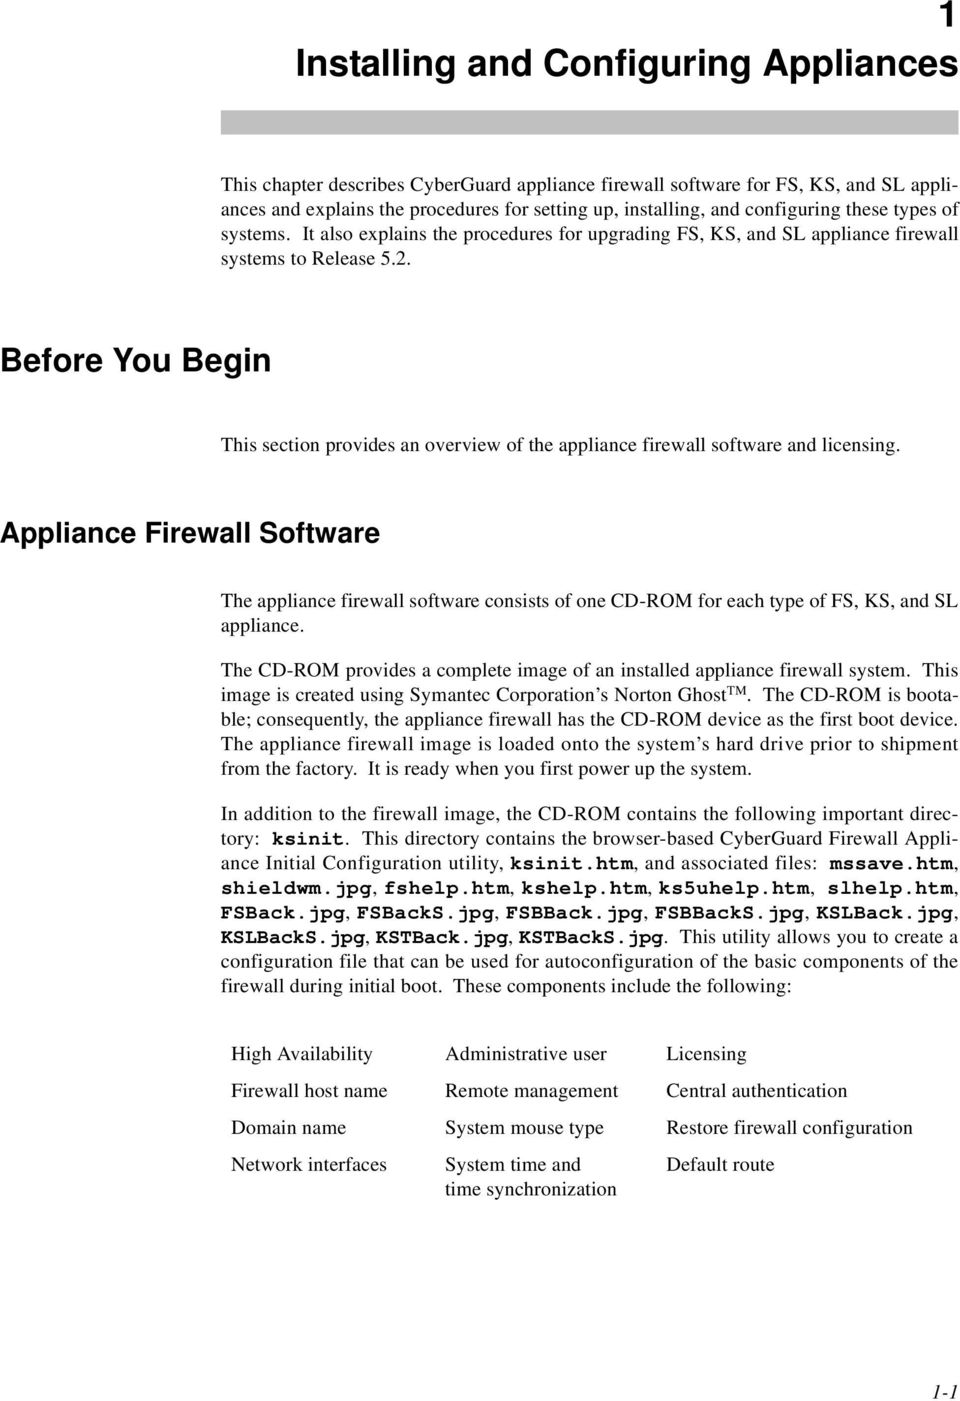 1 1 Before You Begin 1 This section provides an overview of the appliance firewall software and licensing.